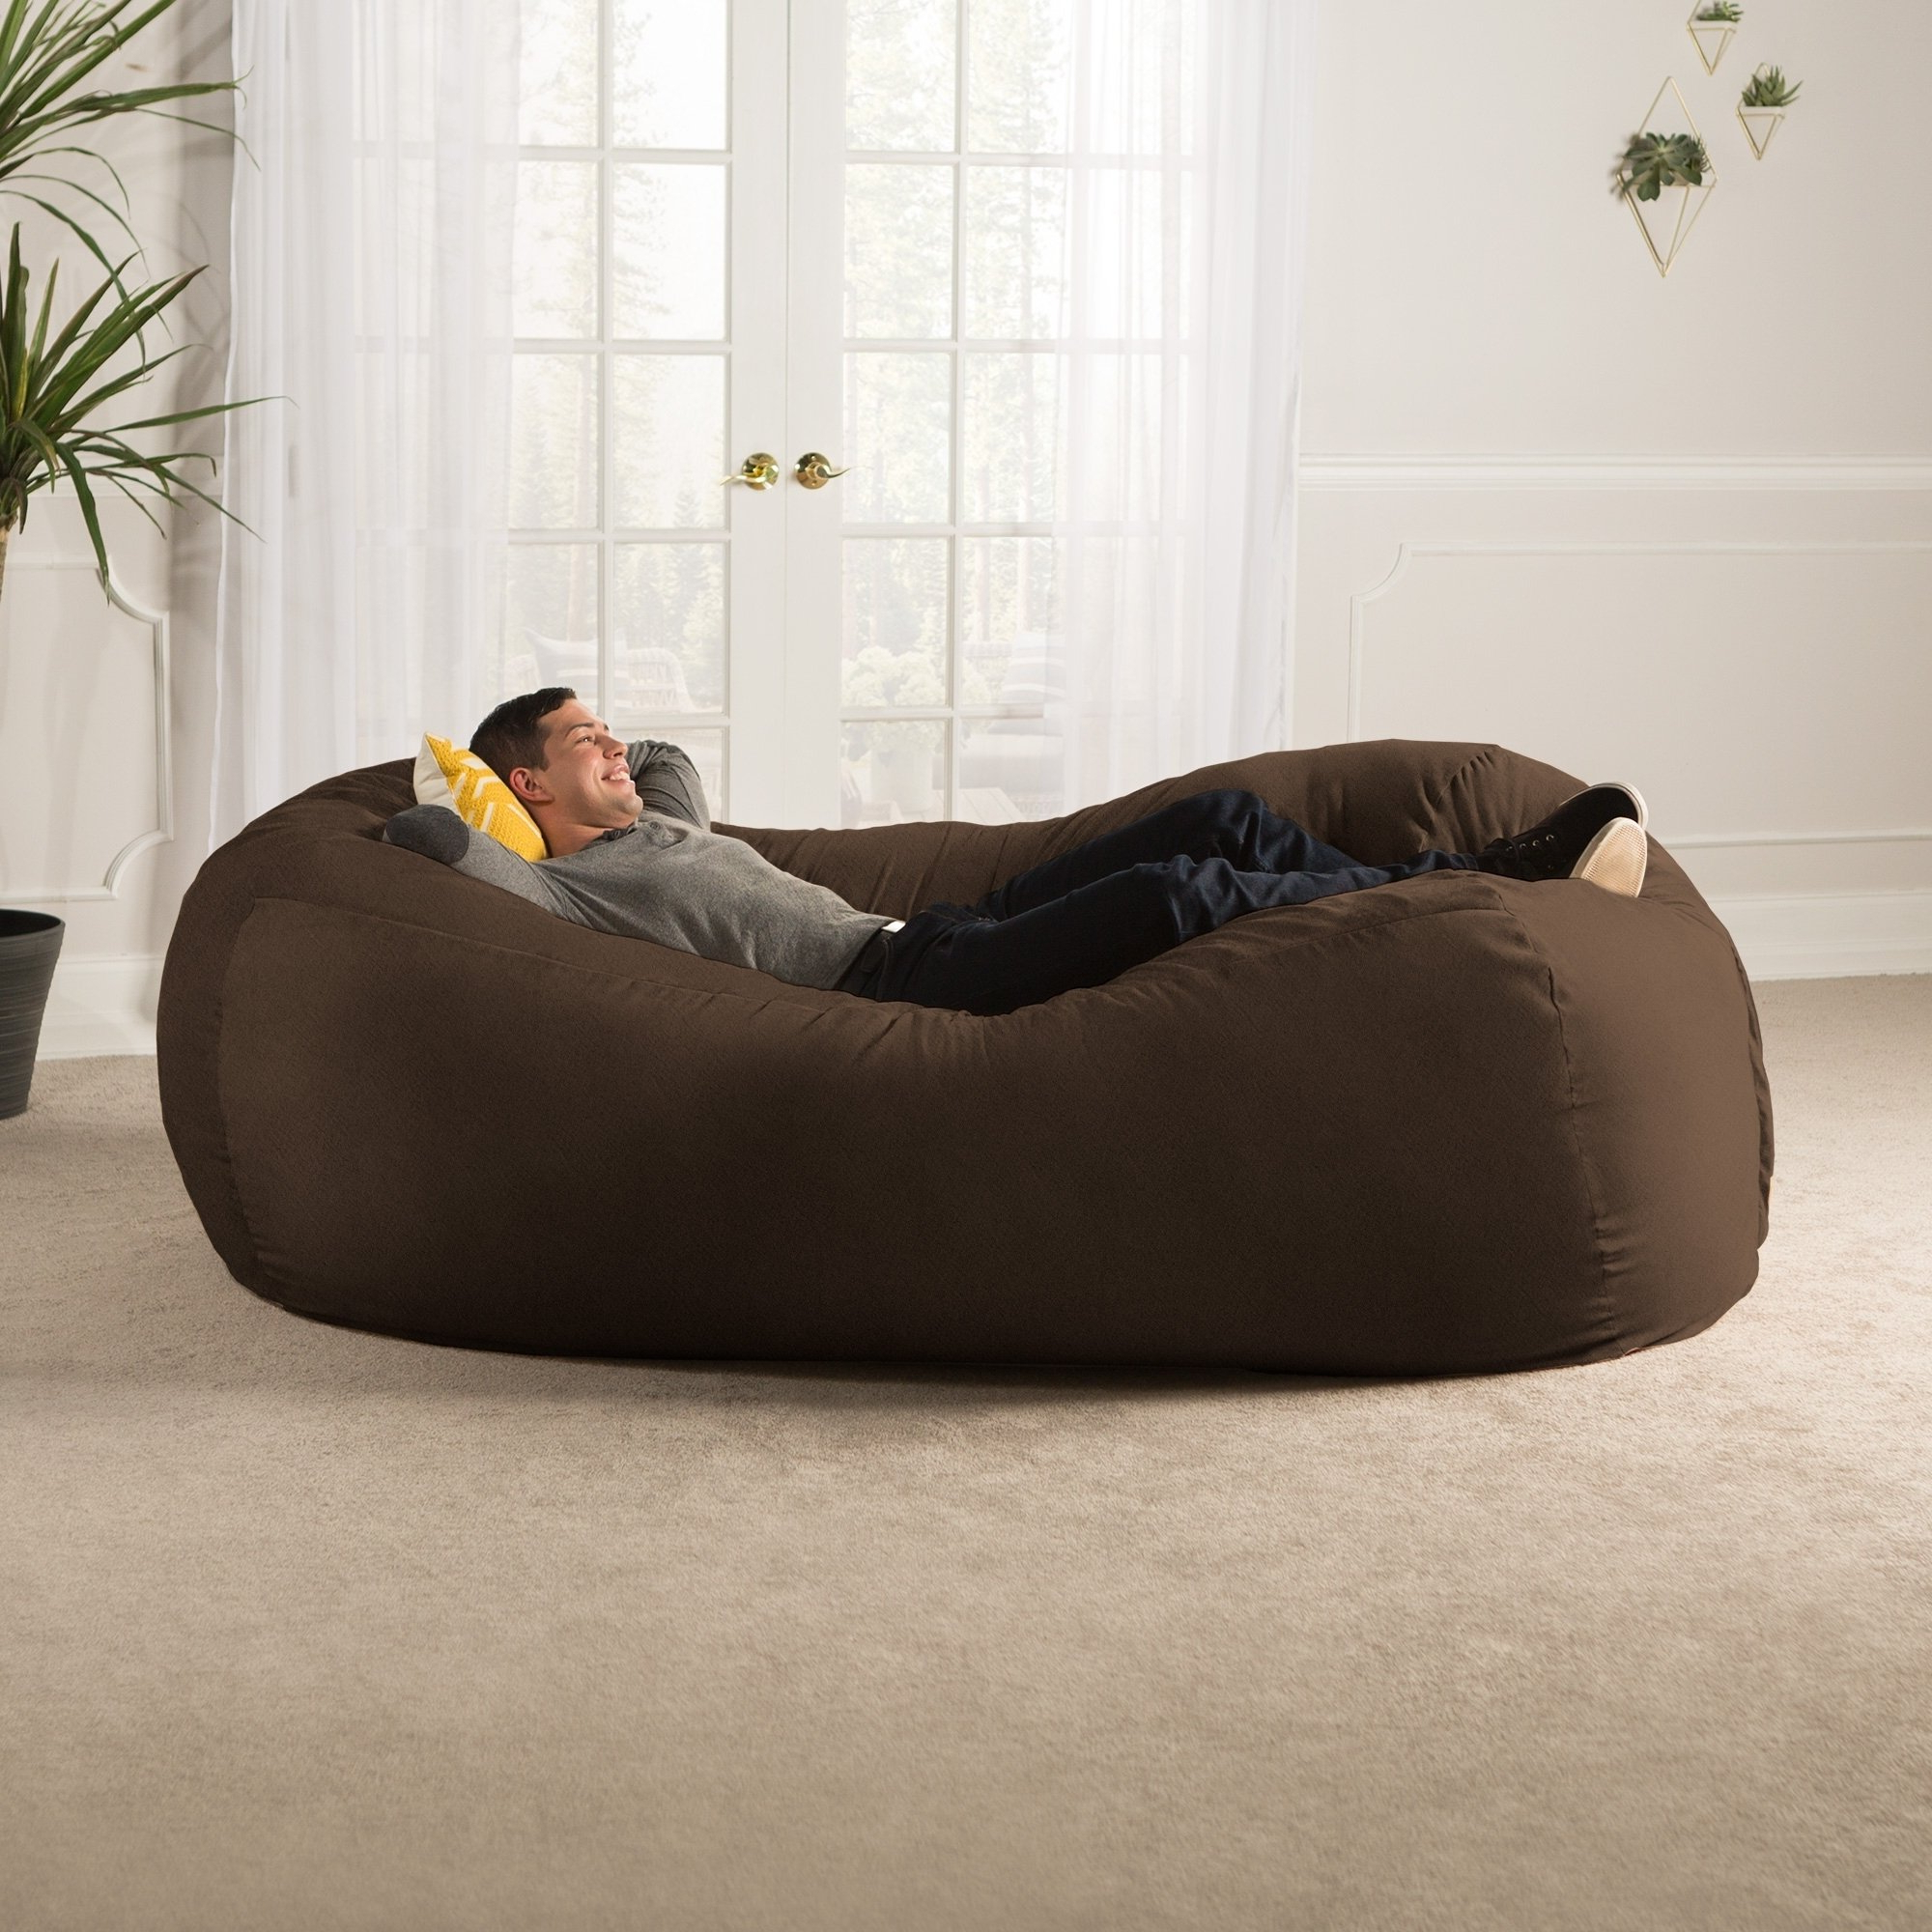 Shop Jaxx 7' Bean Bag Sofa – Free Shipping Today – Overstock With Favorite Bean Bag Sofa Chairs (View 3 of 20)